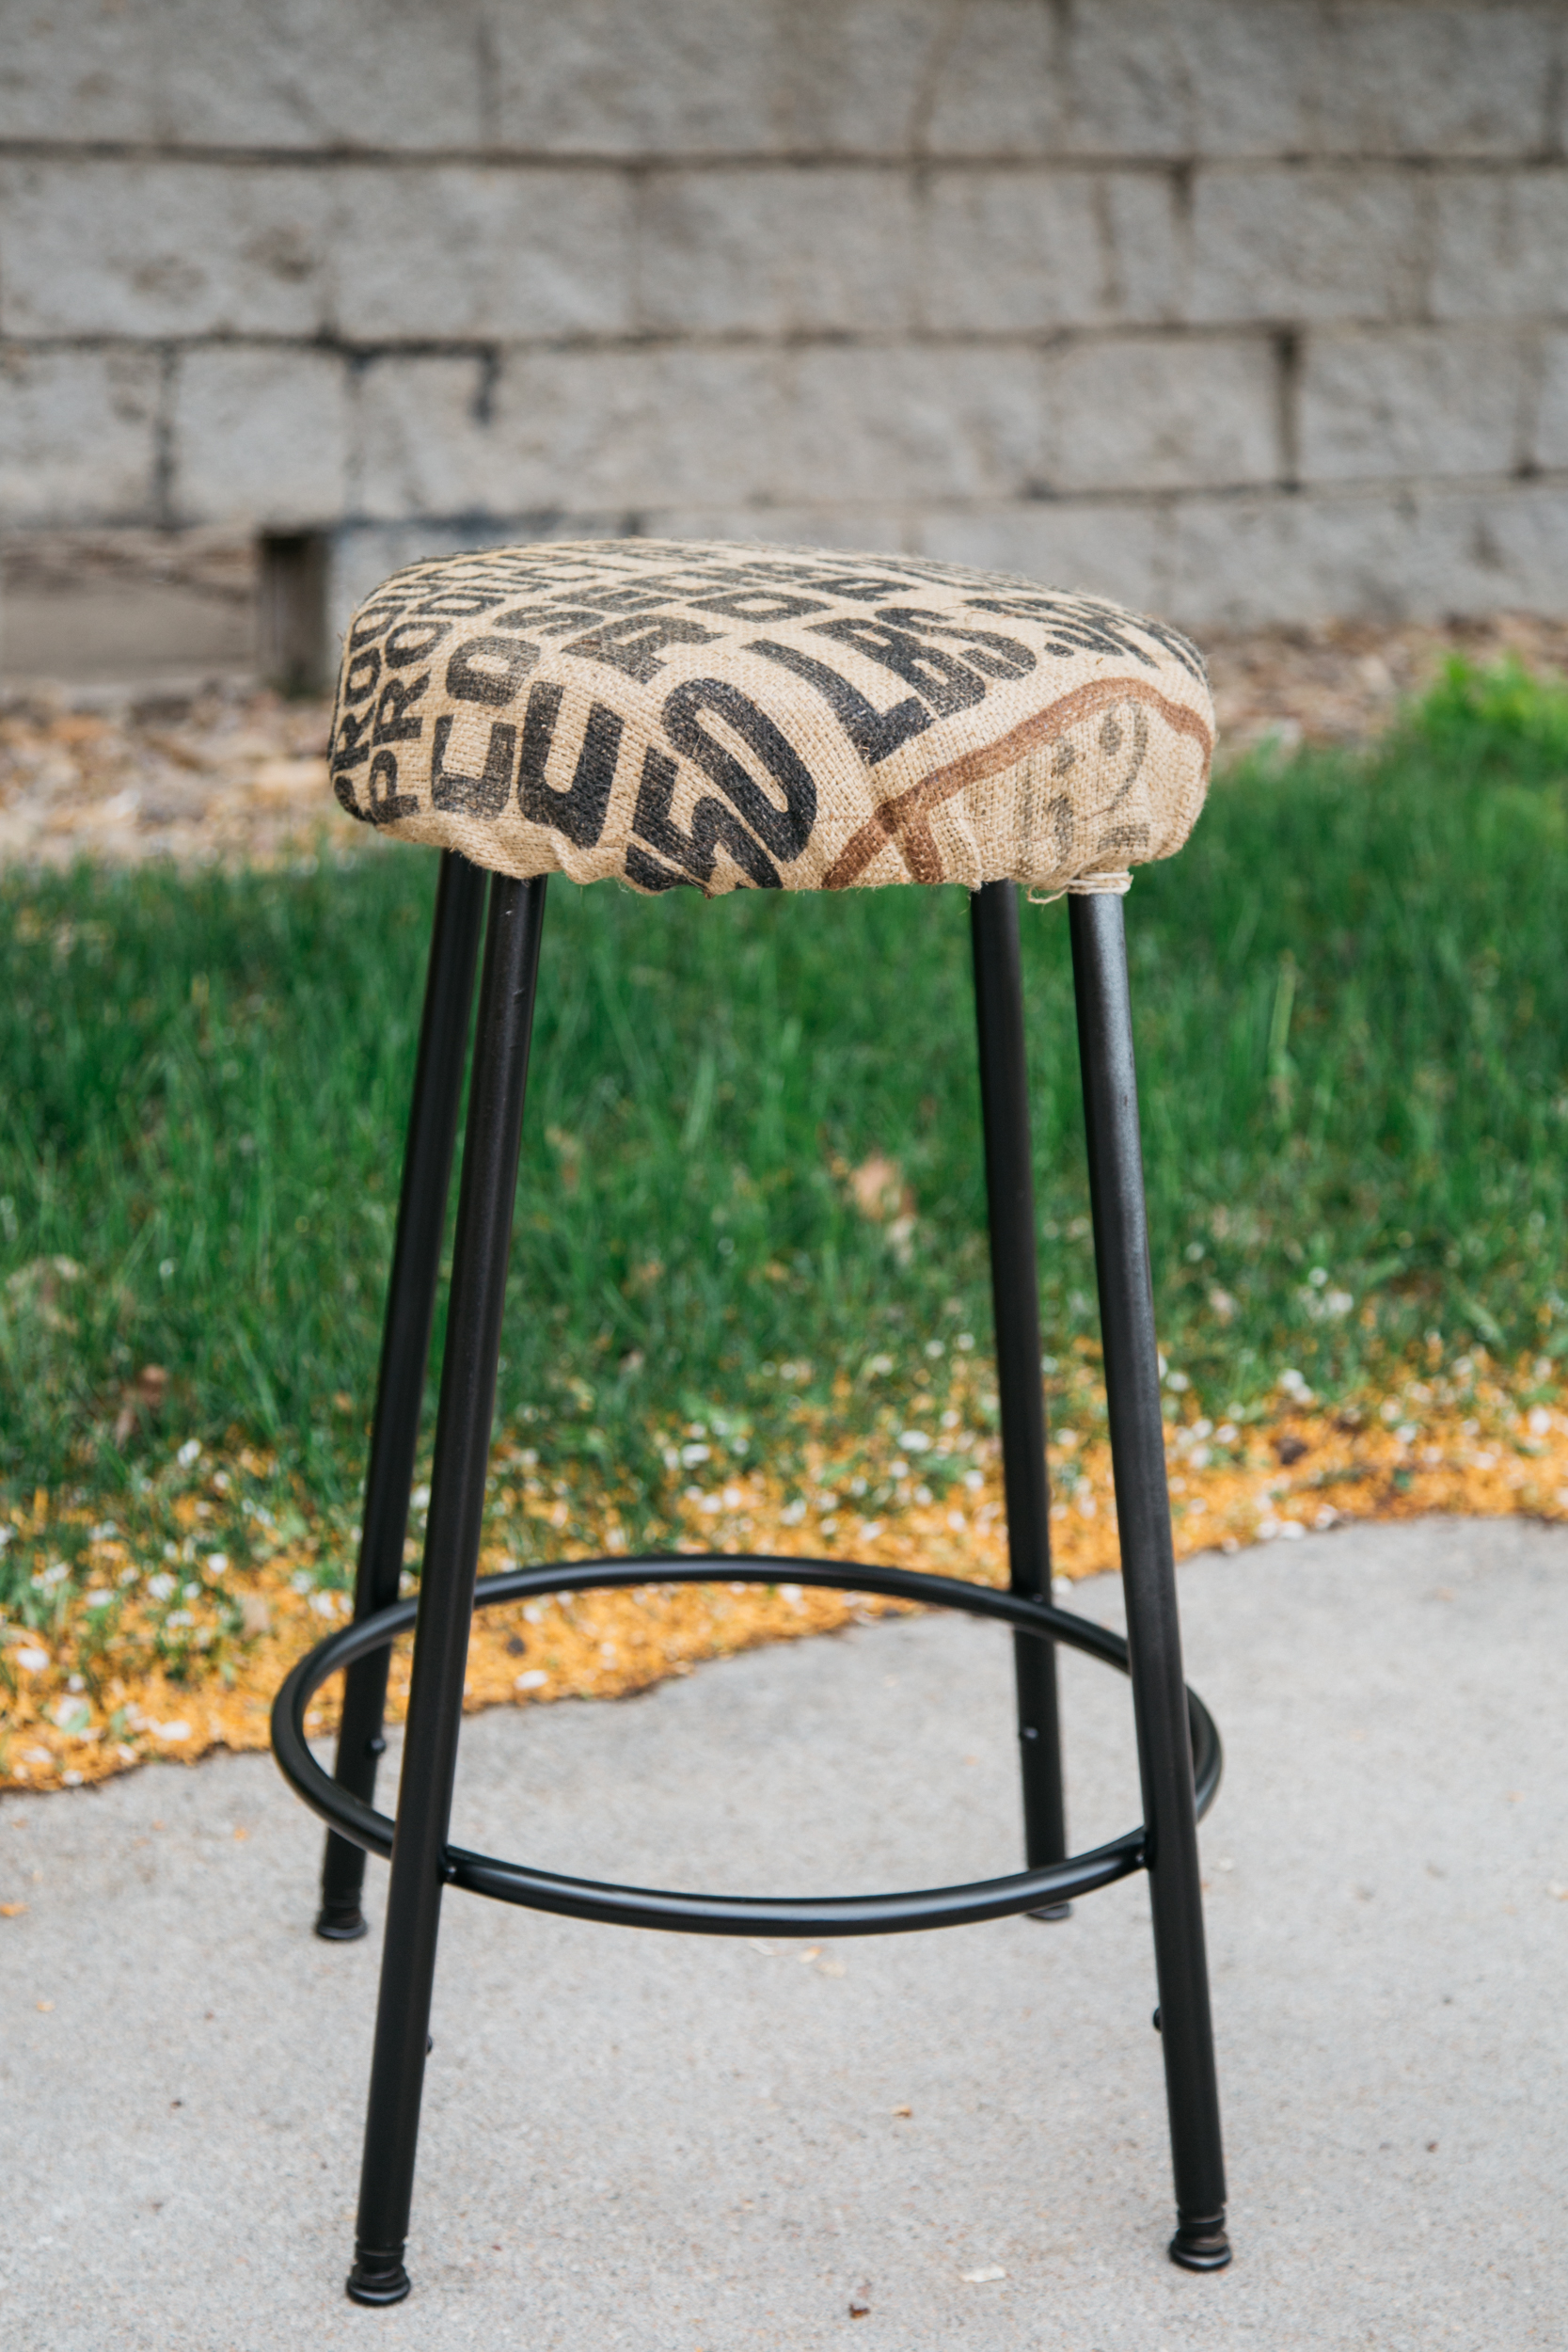 A burlap sack turned into a bar stool cover.